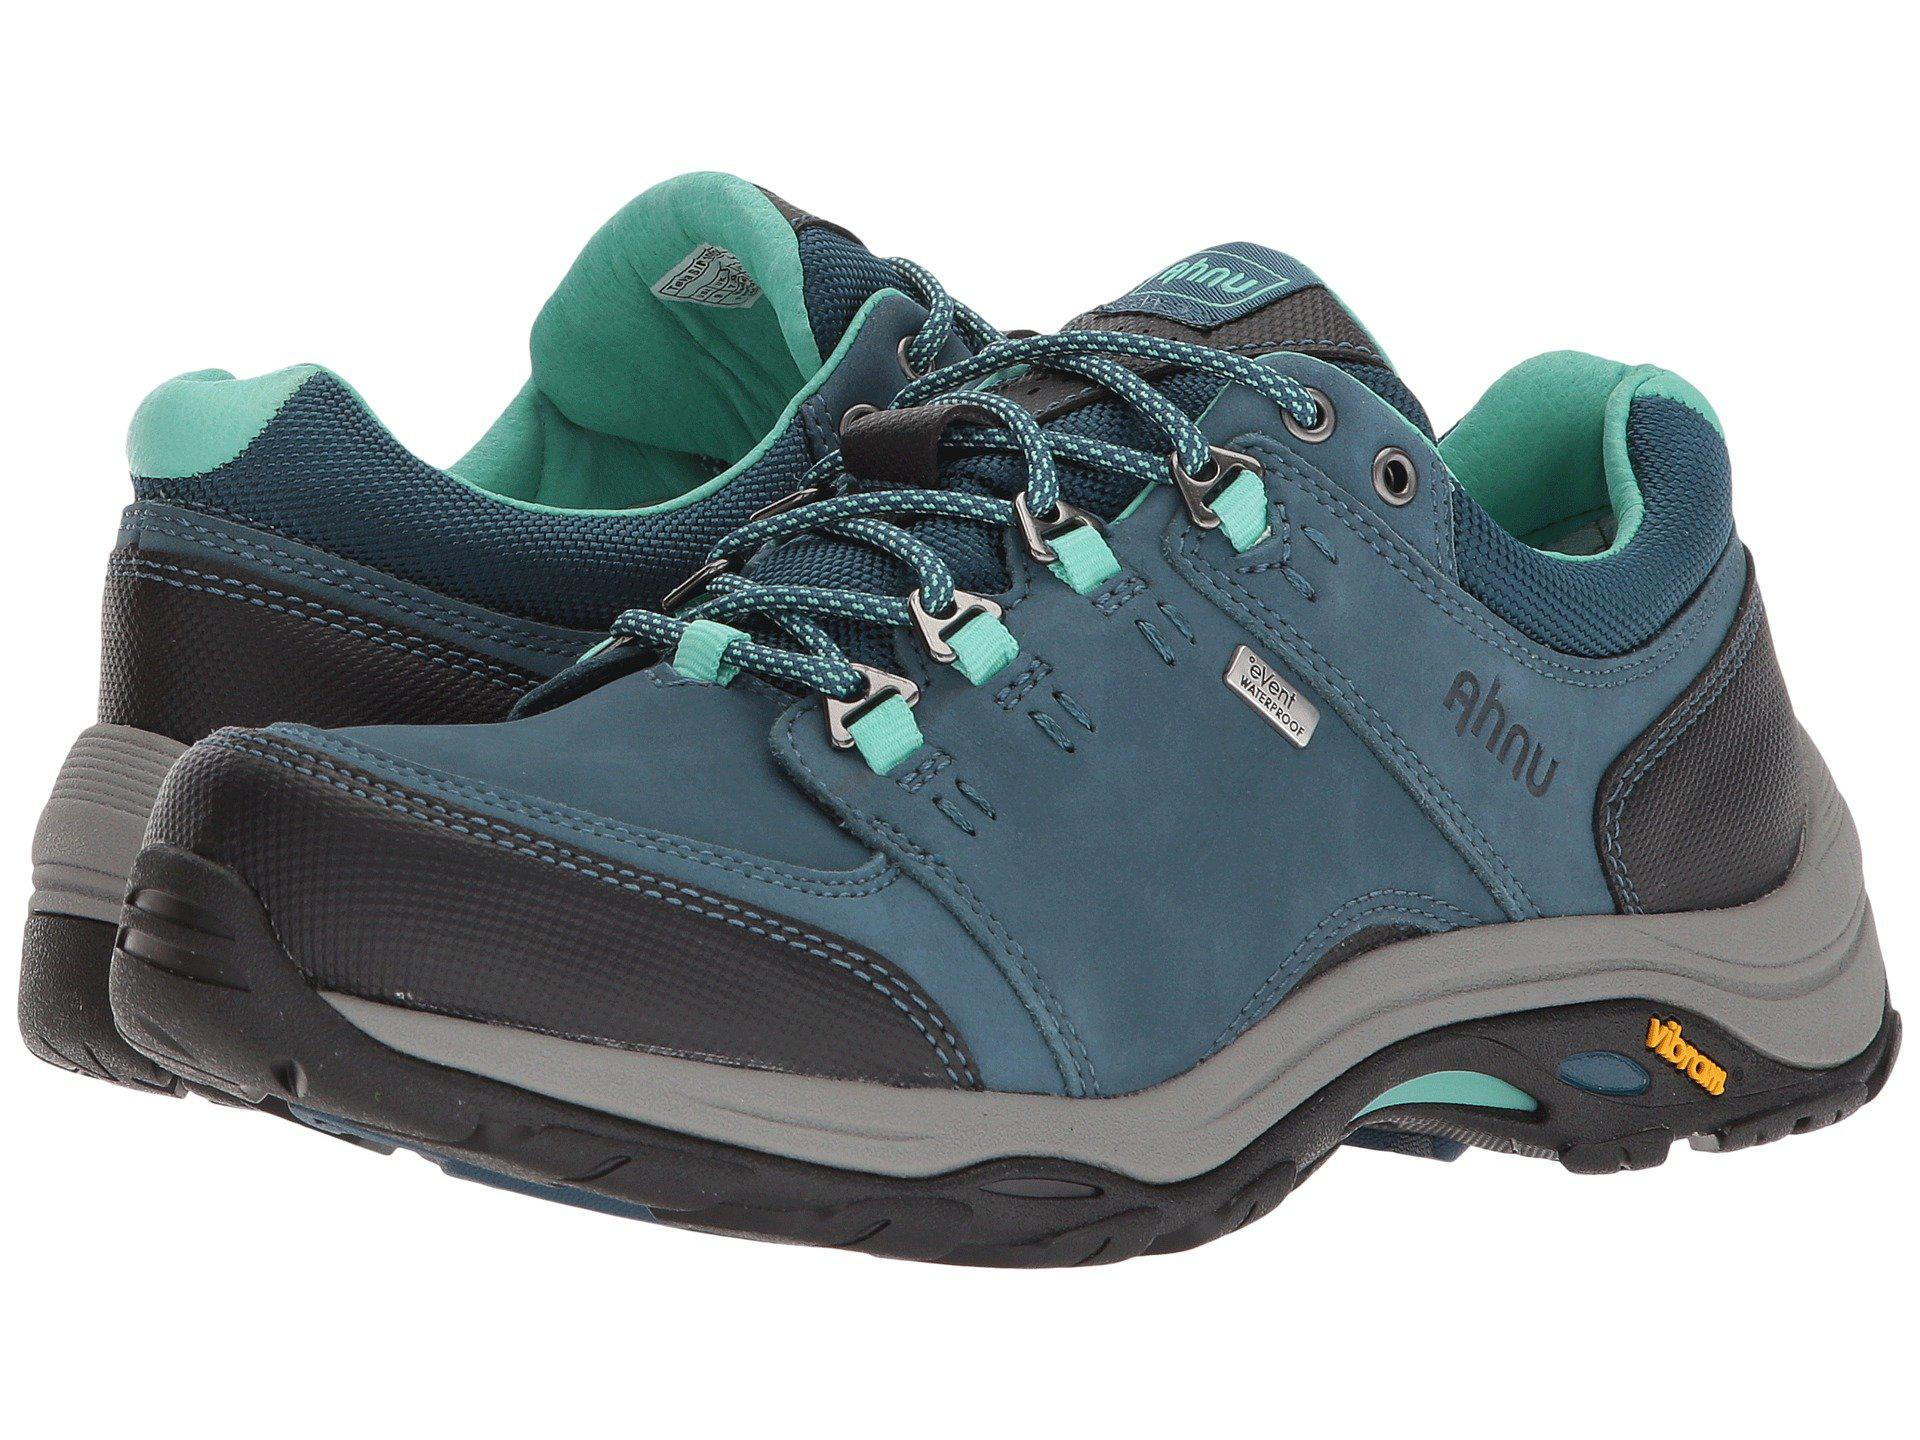 304a40ac08c Lyst - Teva Montara Iii Event (chocolate Chip) Women's Shoes in Blue